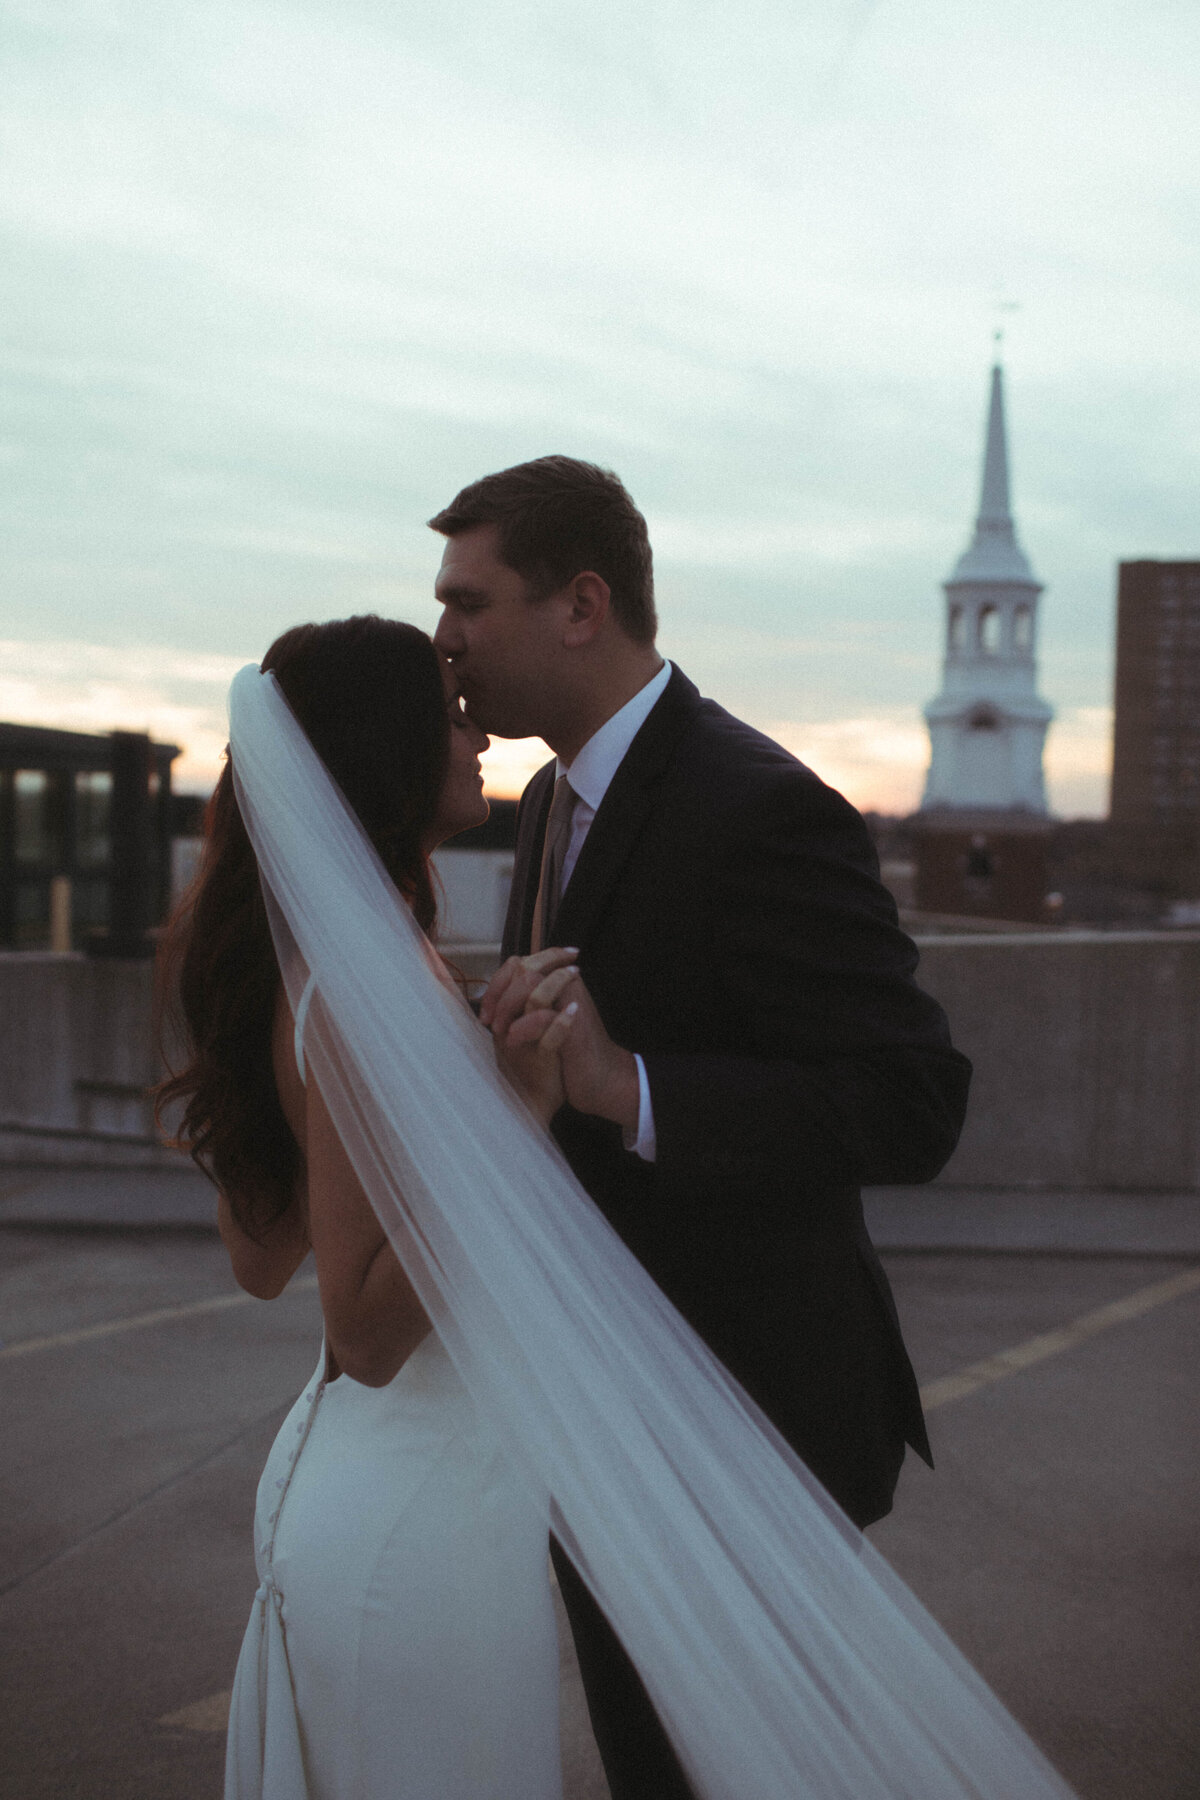 philadelphia-wedding-photographer-bobbi-phelps-photography-2